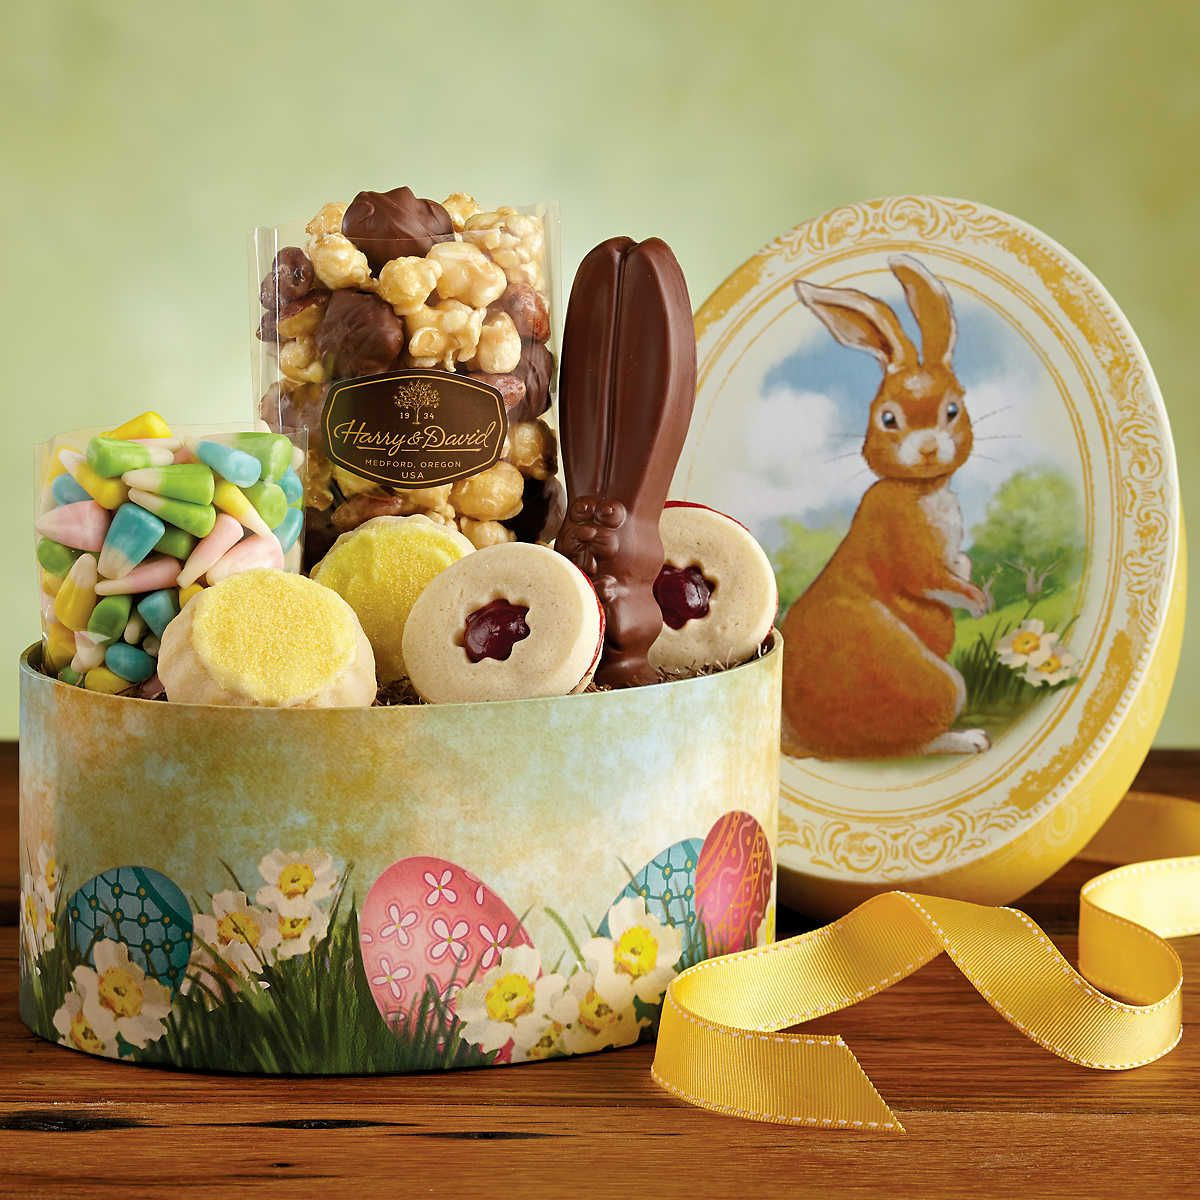 A gift box shaped like an egg and decorated for the holiday makes easter negle Image collections